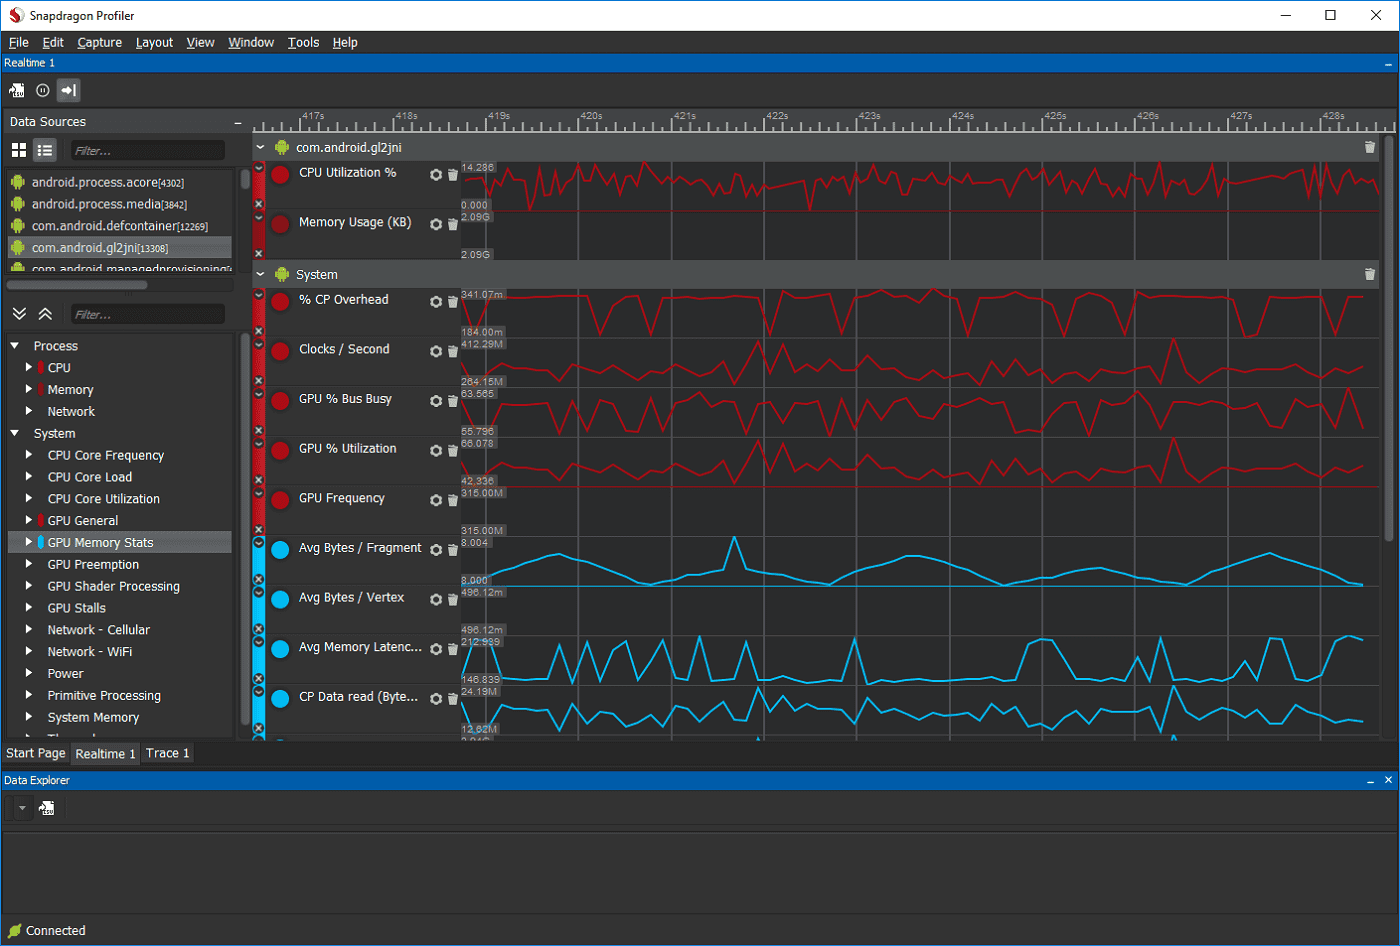 Qualcomm Snapdragon Profiler